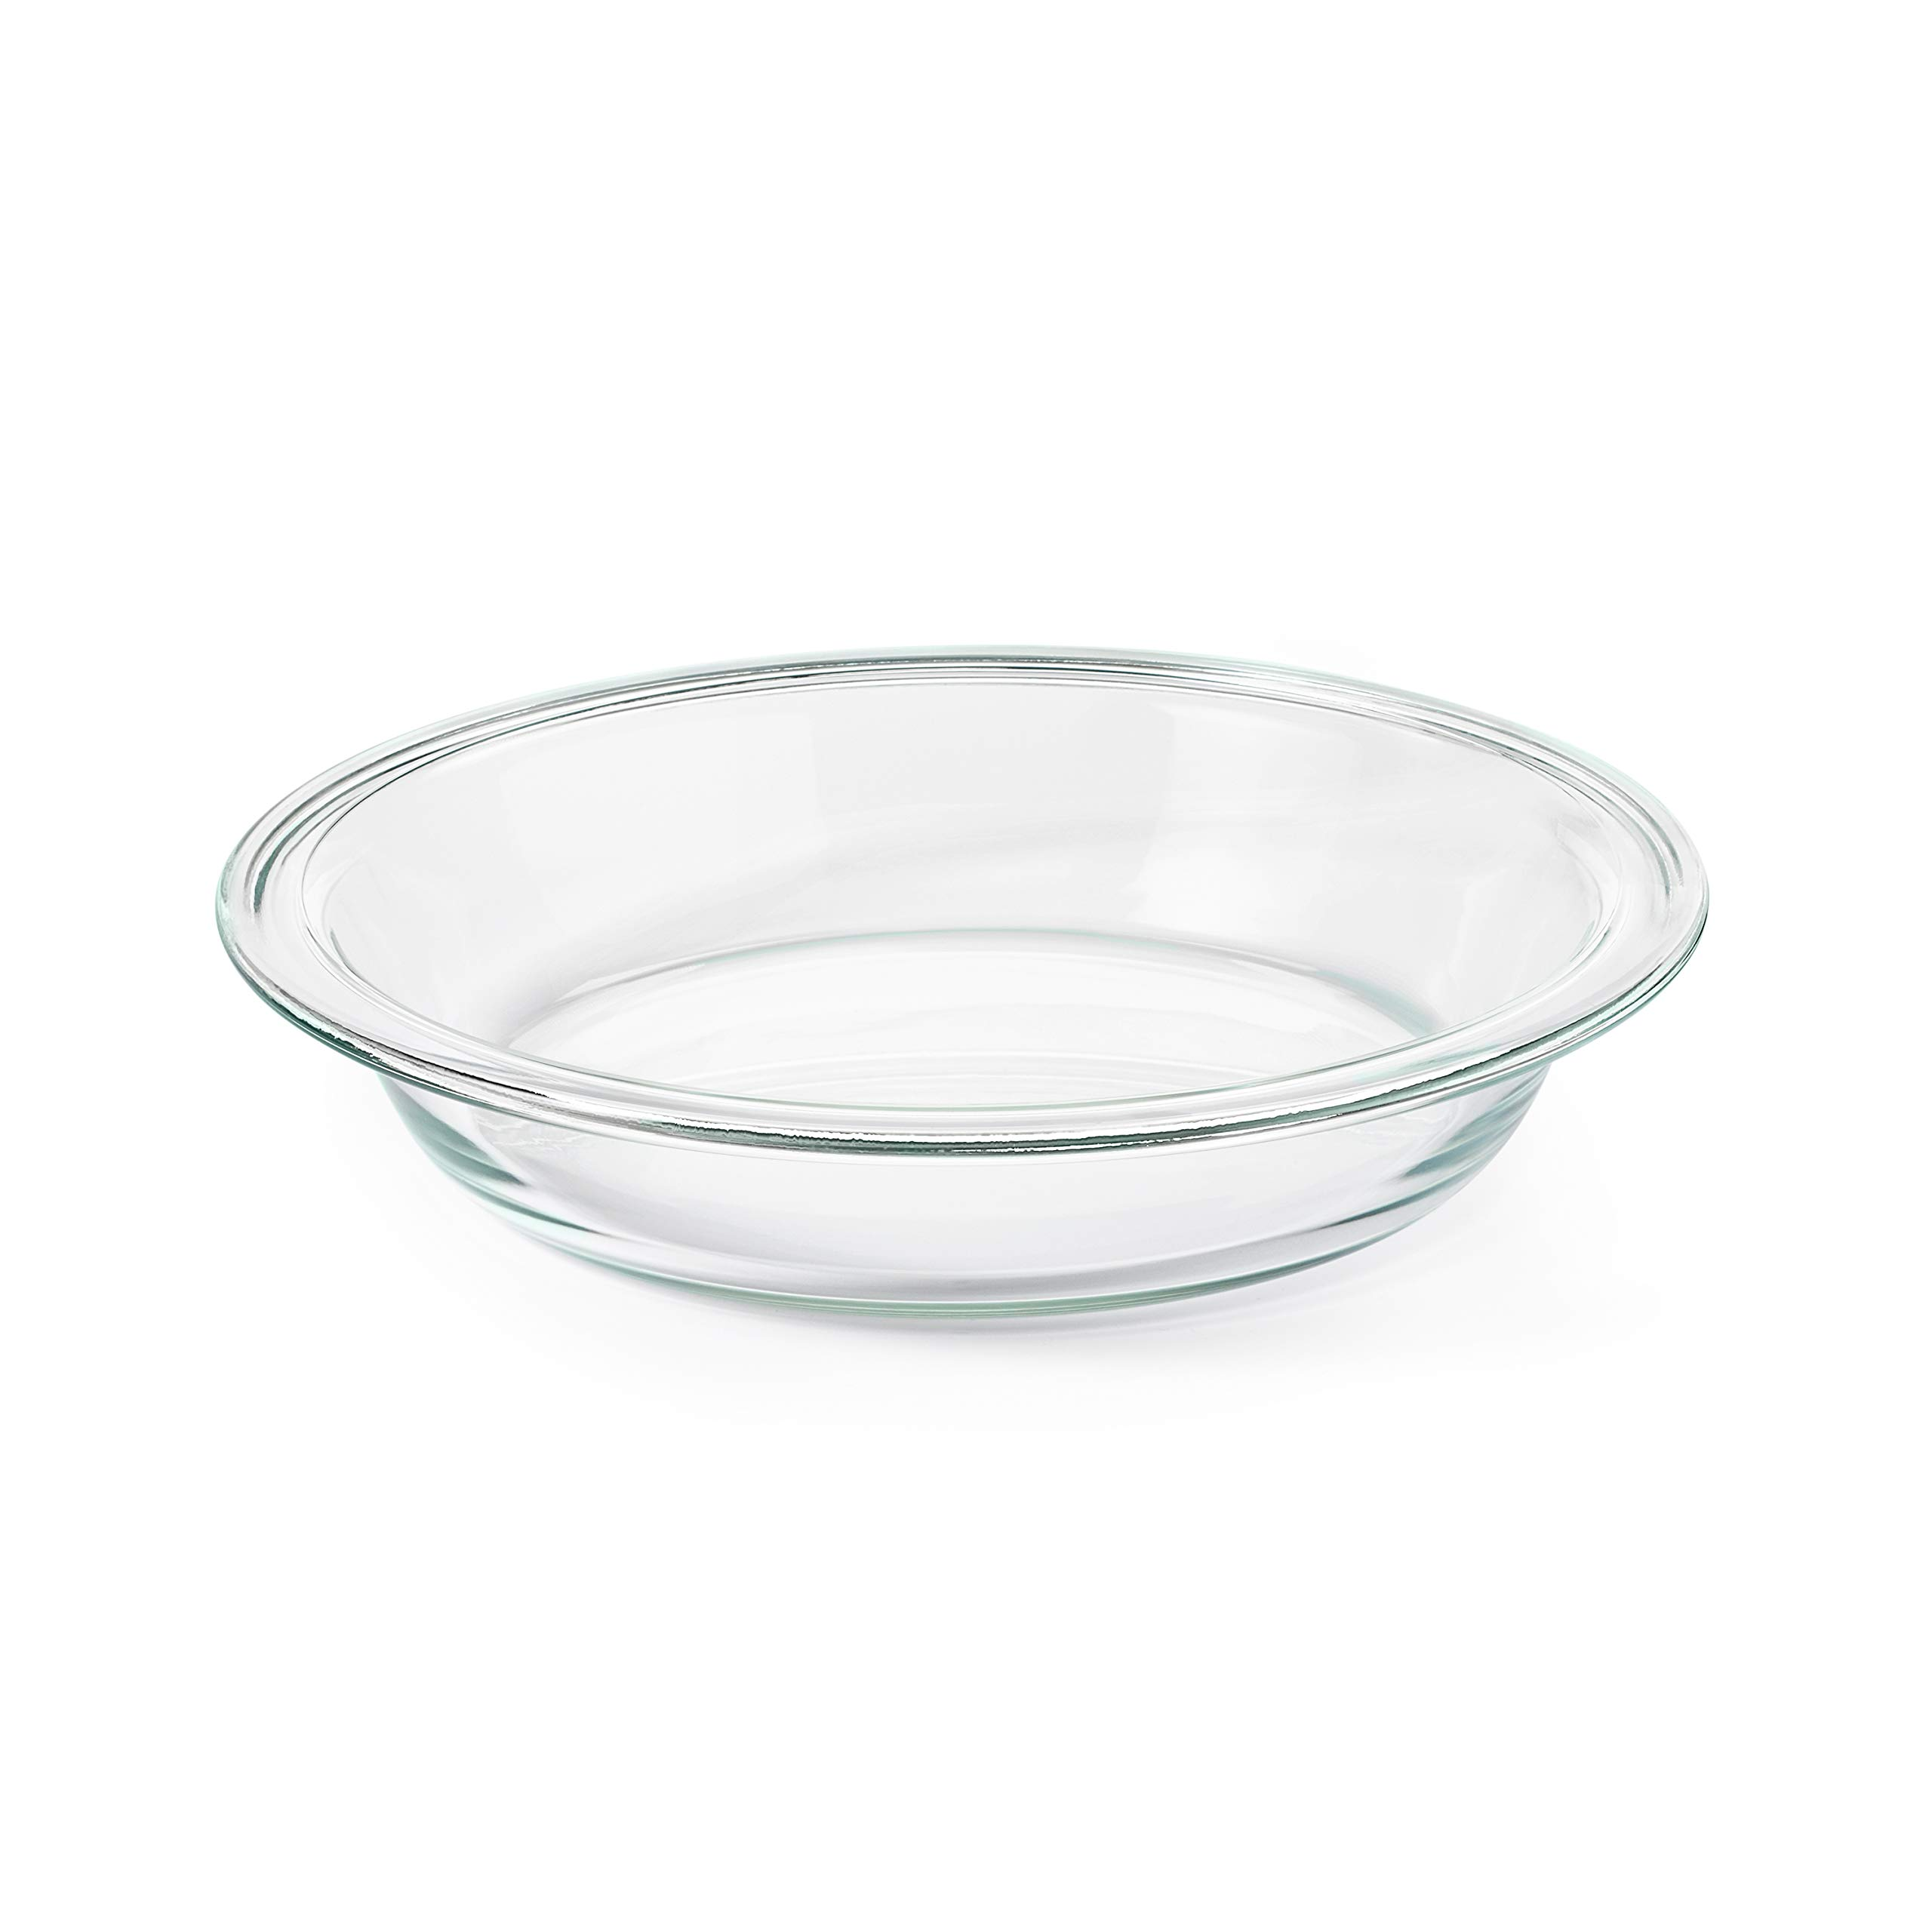 OXO Good Grips 8 Piece Freezer-to-Oven Safe Glass Bake, Serve and Store Set by OXO (Image #4)